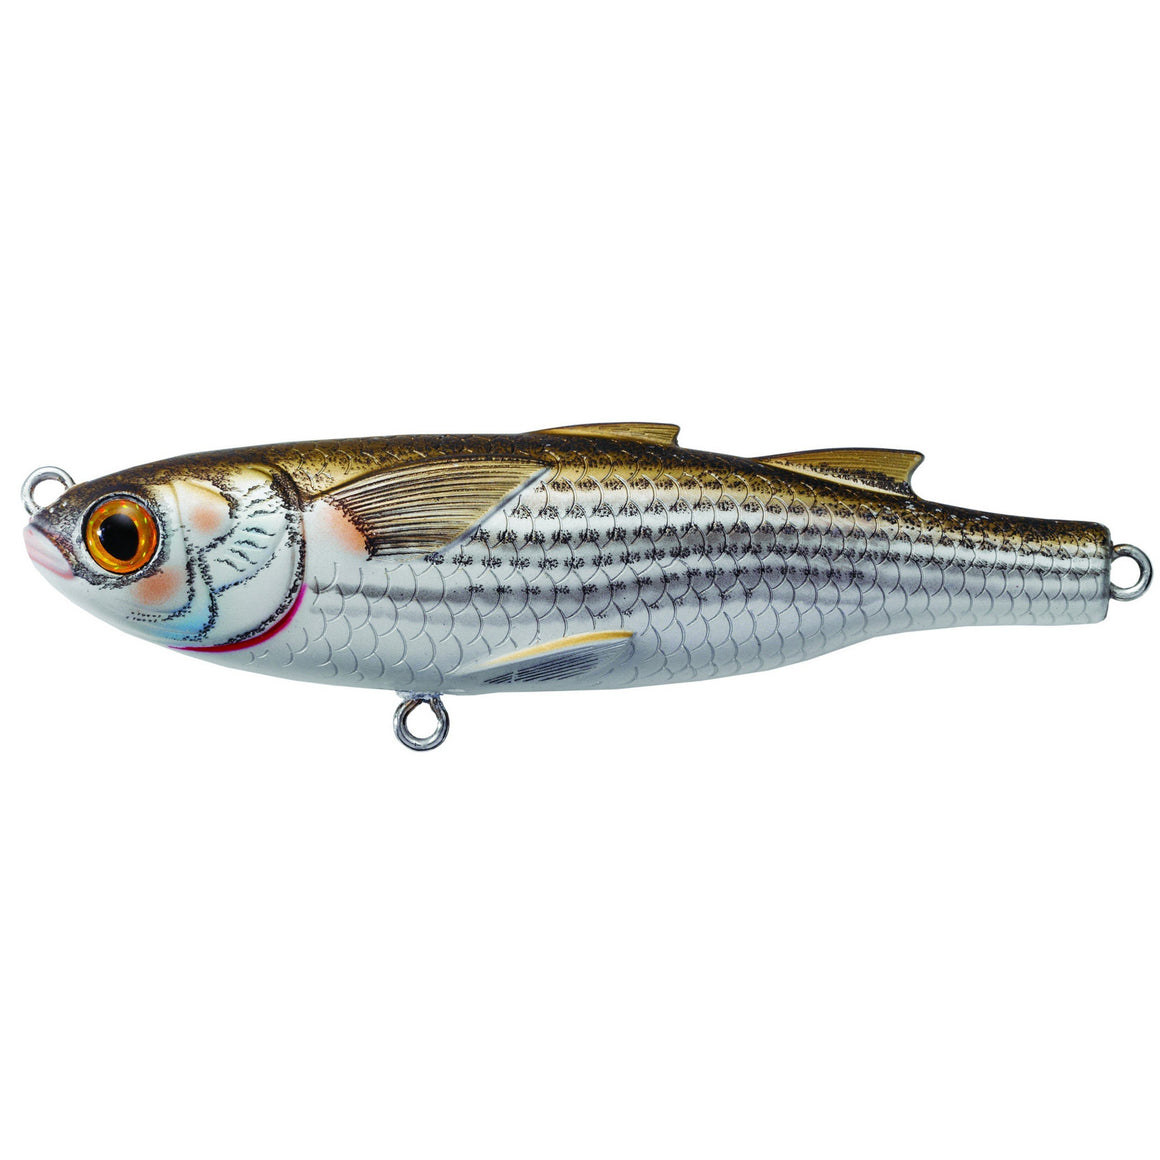 "LIVETARGET Lures Mullet Twitchbait Saltwater, 4 1/2"", #2 Hook, 0""-6"" Depth Natural/Matte"